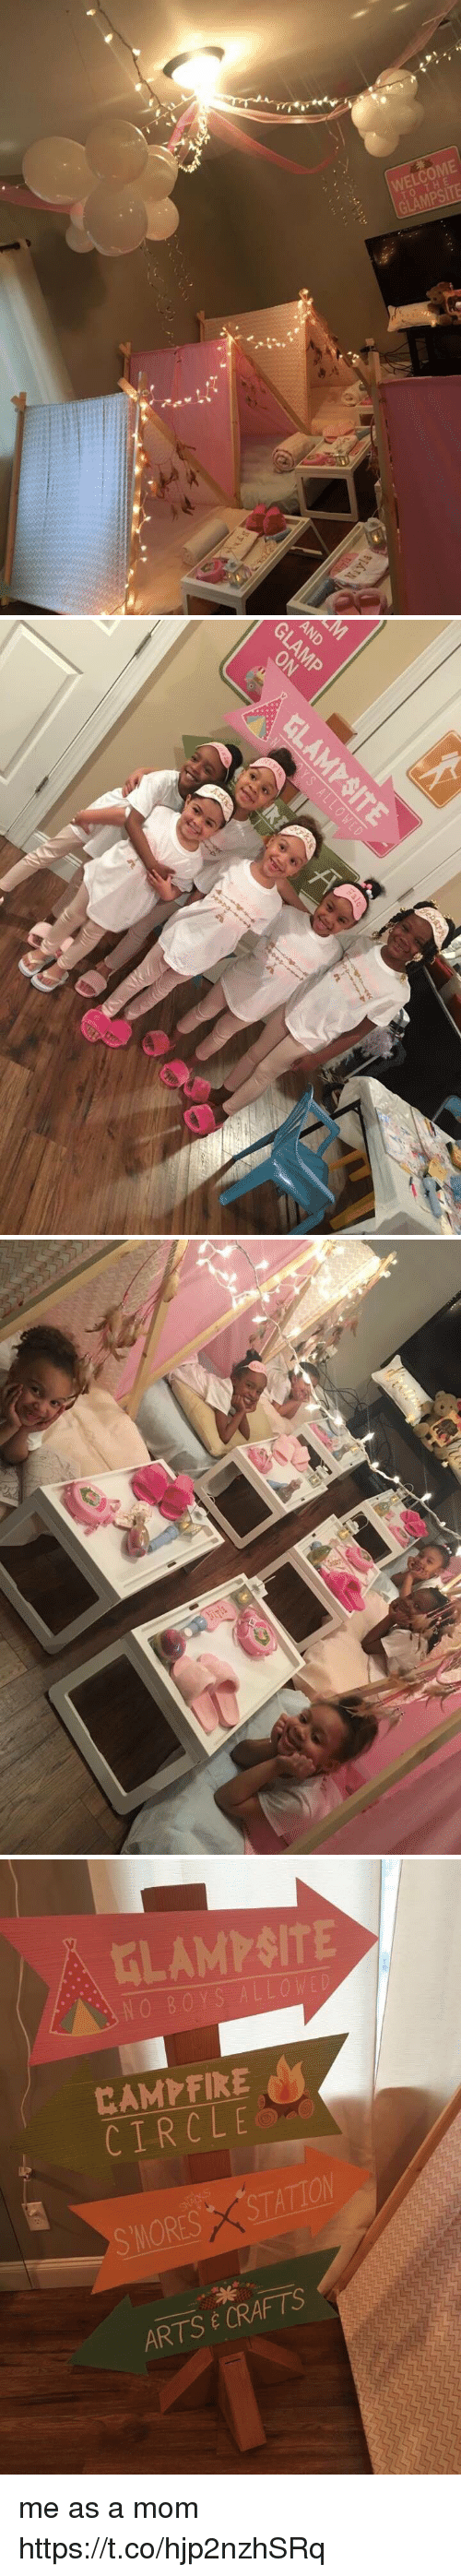 Girl Memes, Mom, and Arts: WELCOME  TO THE  GLAMPSITE   AND   CIRCLE  X STATION  SMORES CRAFTS  E ARTS me as a mom https://t.co/hjp2nzhSRq